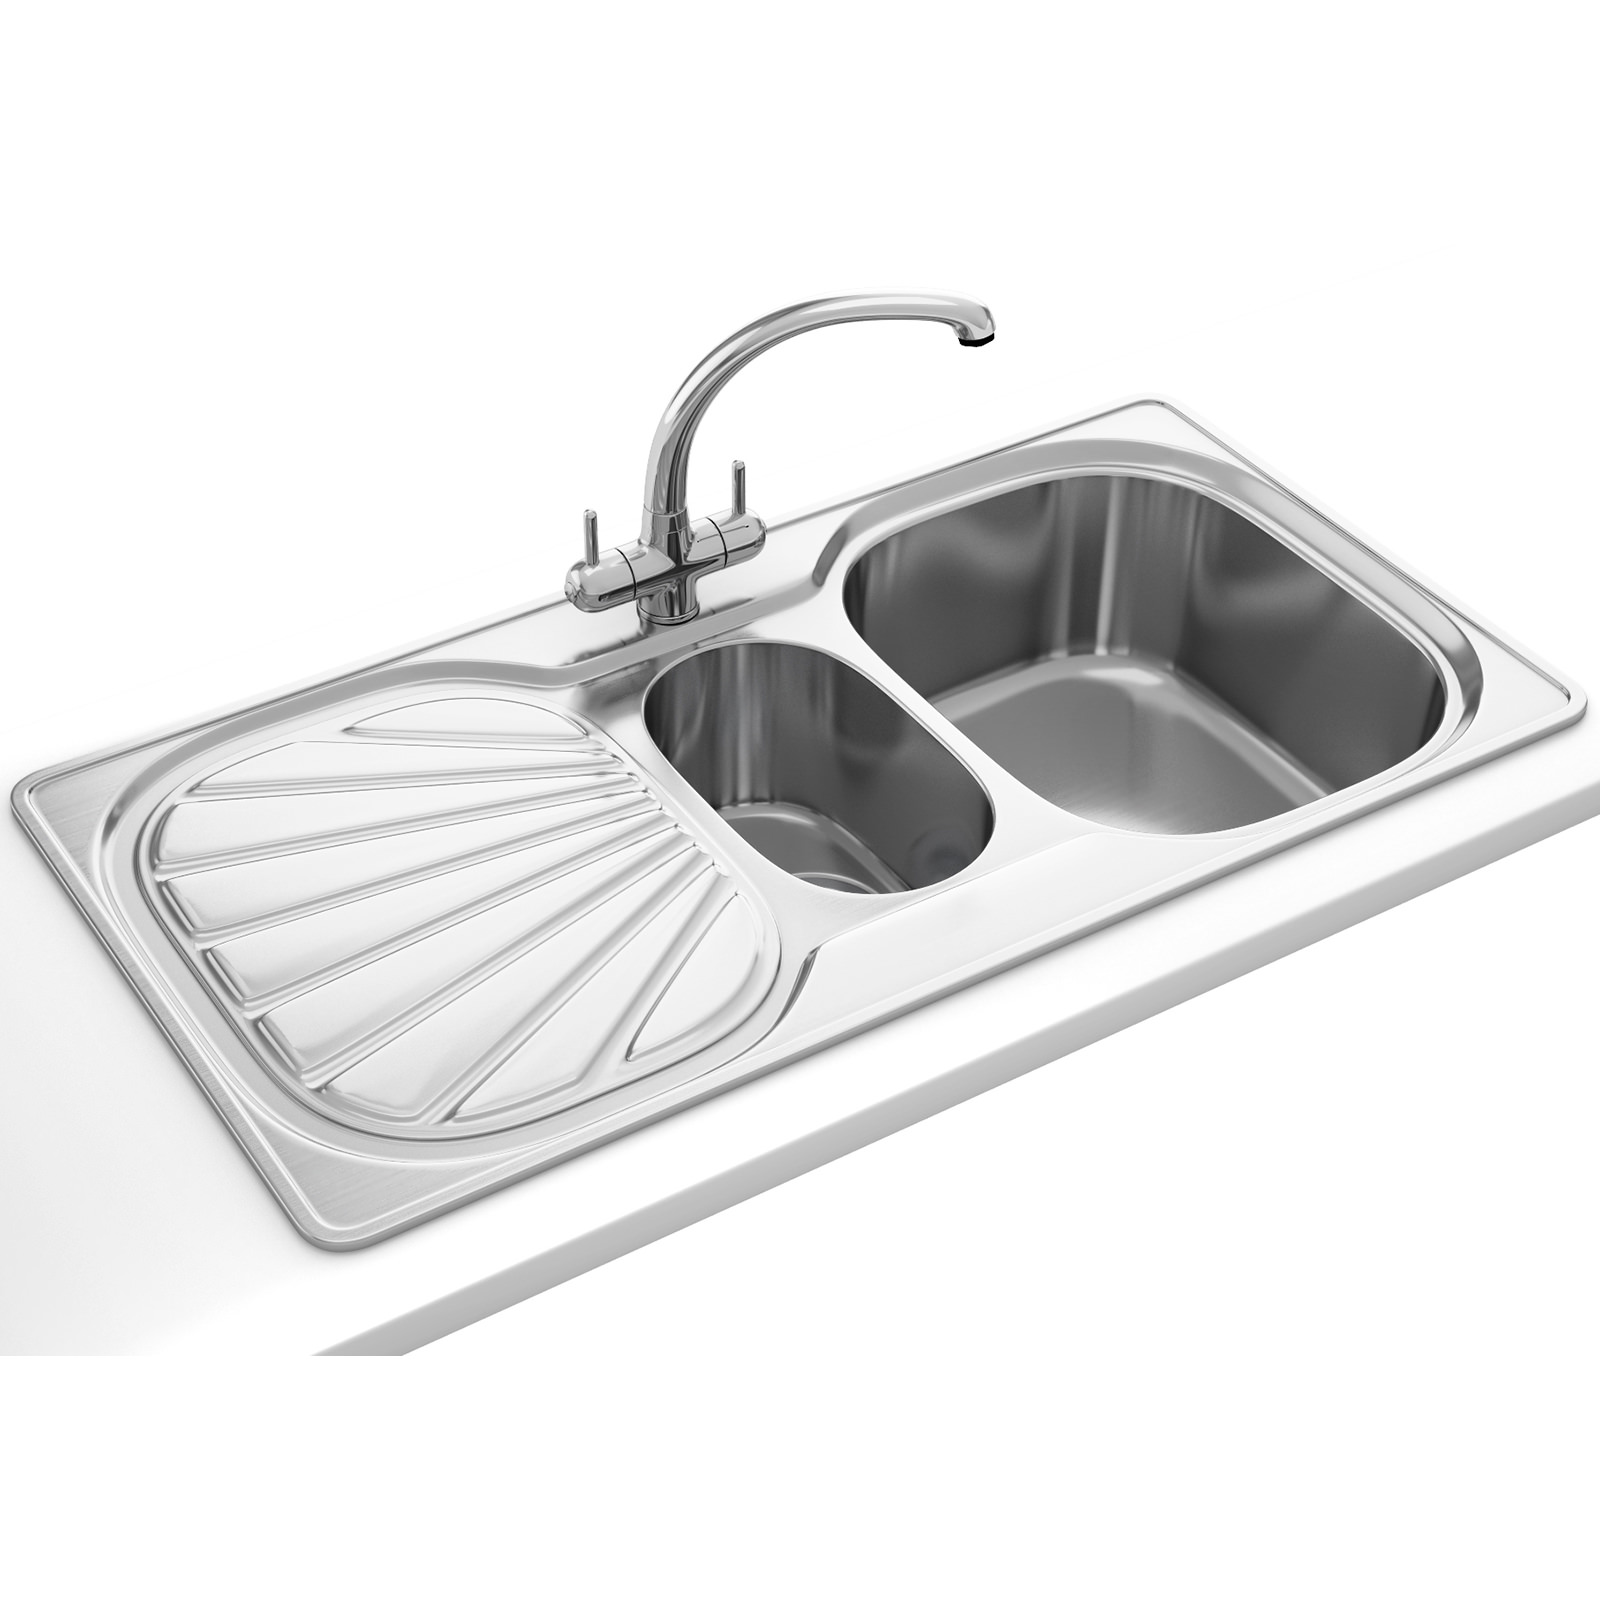 erica propack eux 651 stainless steel kitchen sink and tap. Interior Design Ideas. Home Design Ideas